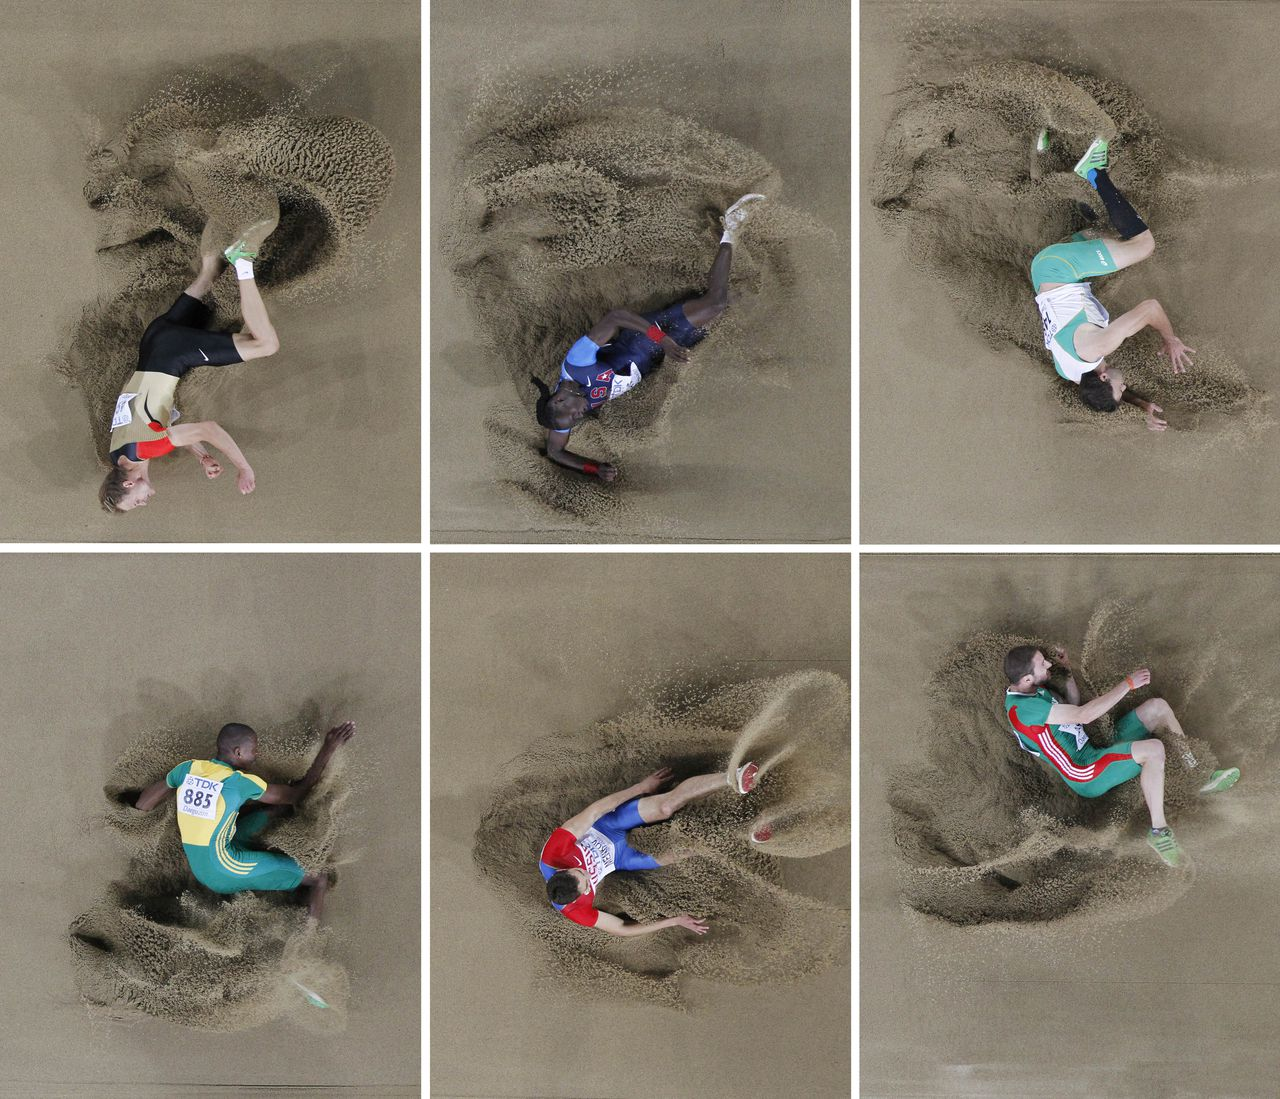 In this combo image made from six photos, top from left, Germany's Christian Reif, USA's Will Claye, Australia's Mitchell Watt, bottom from left, South Africa's Luvo Manyonga, Russia's Aleksandr Menkov, and Portugal's Marcos Chuva compete in the Men's Long Jump final at the World Athletics Championships in Daegu, South Korea, Friday, Sept. 2, 2011. (AP Photo/David J. Phillip)